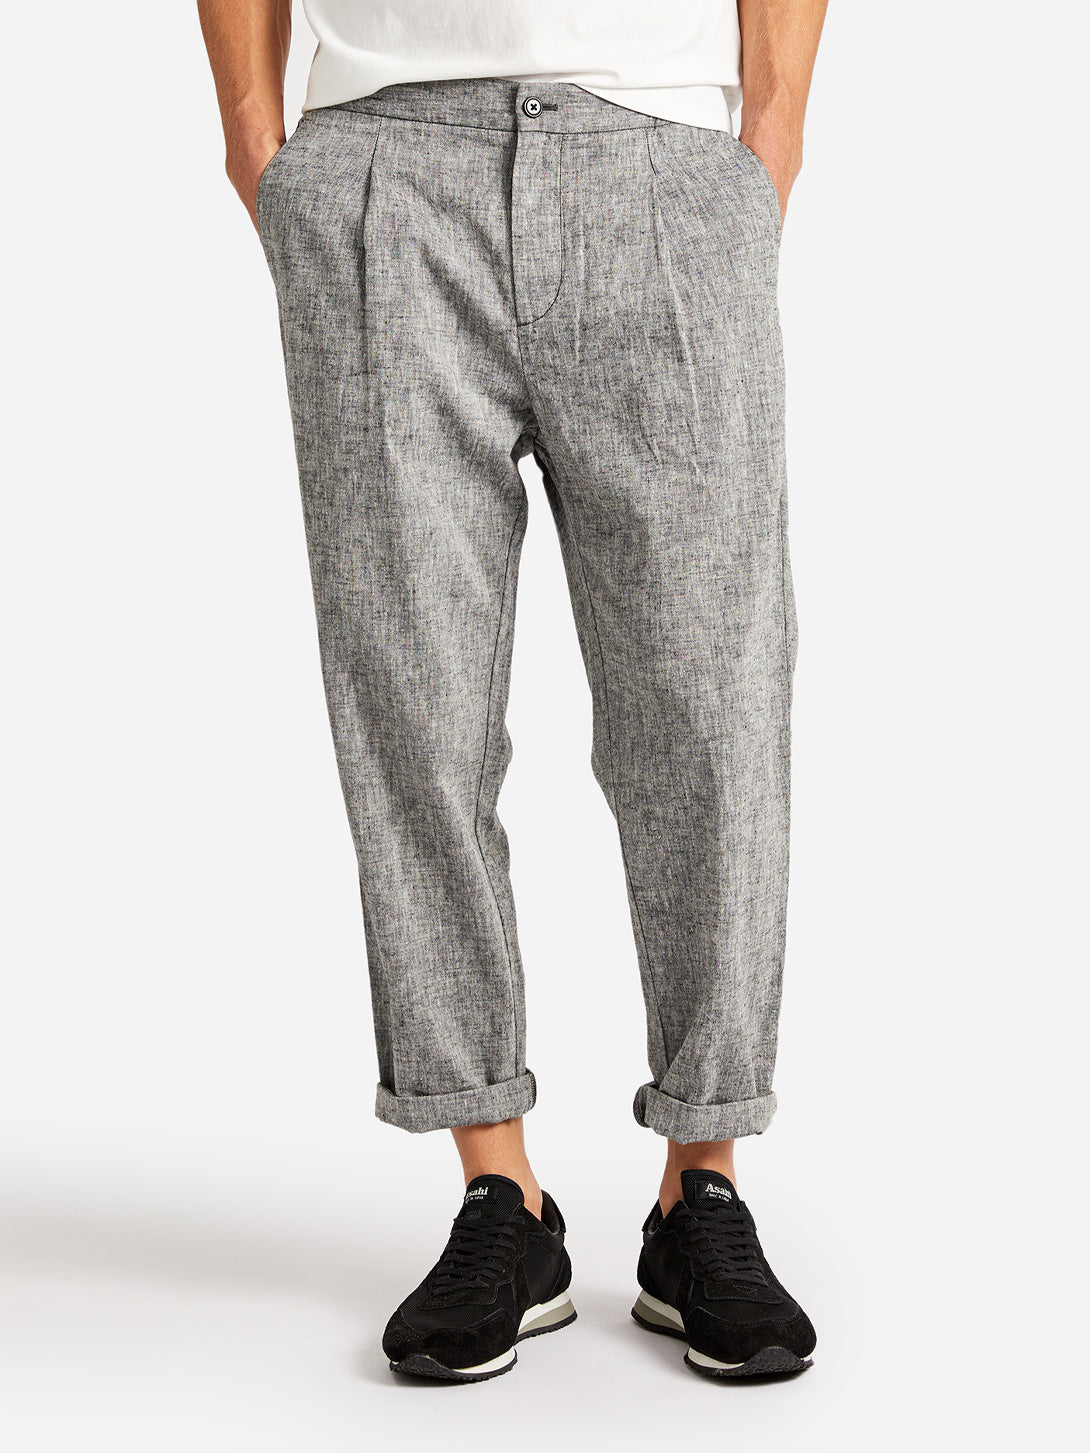 WARD LINEN-BLEND PANT GREY LABEL ONS CLOTHING